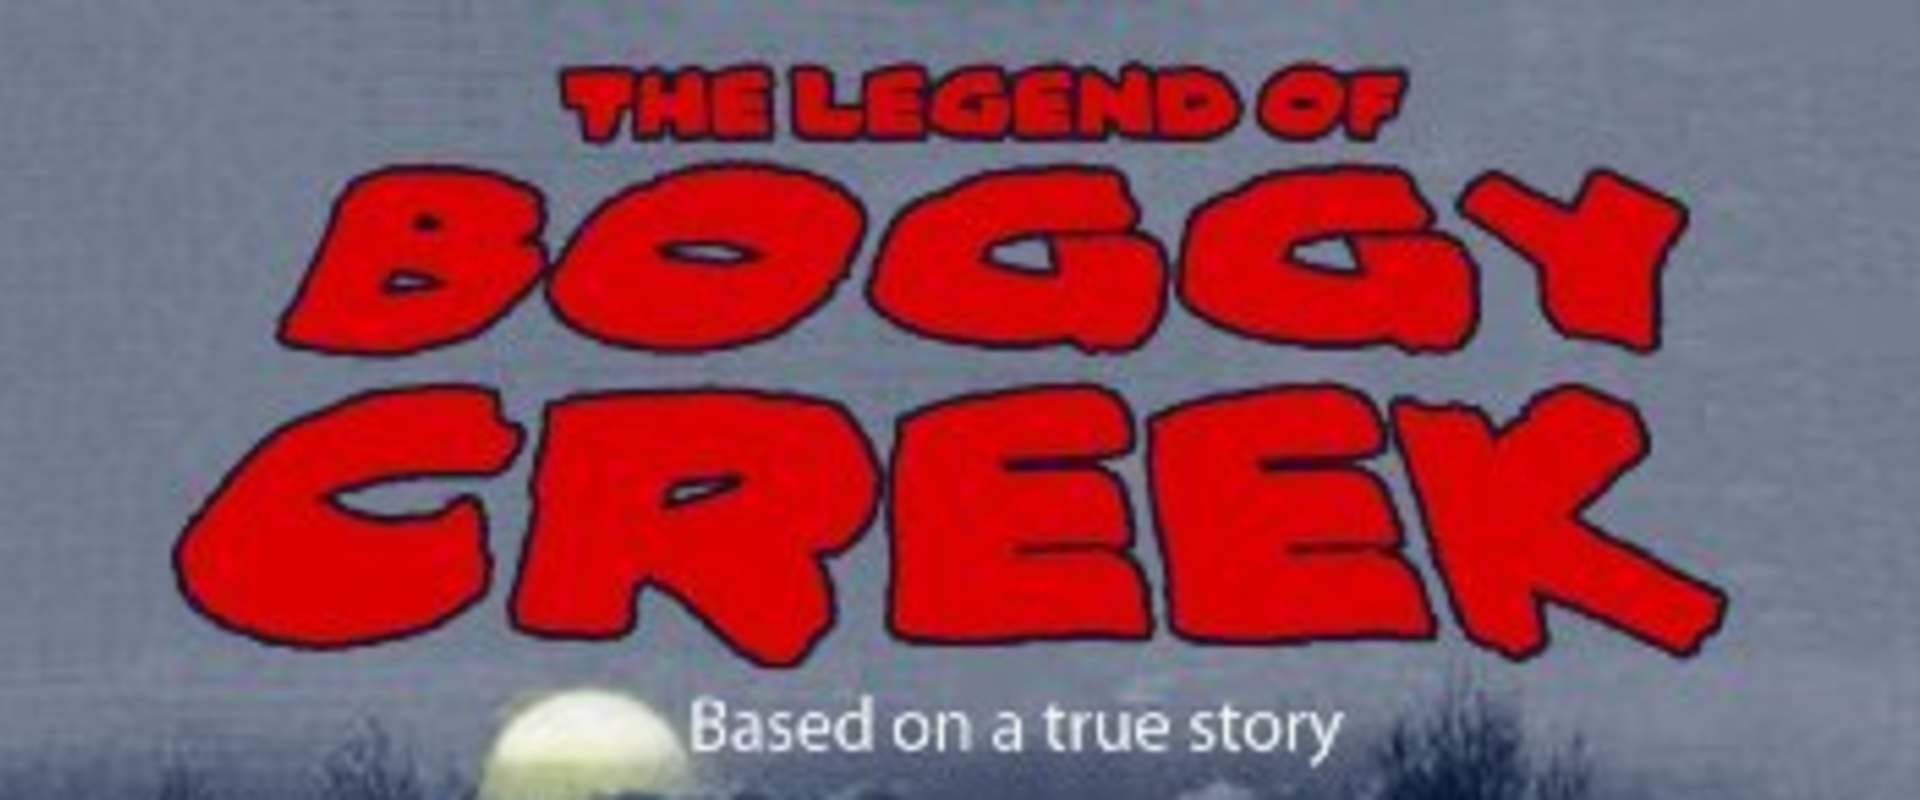 The Legend of Boggy Creek background 1